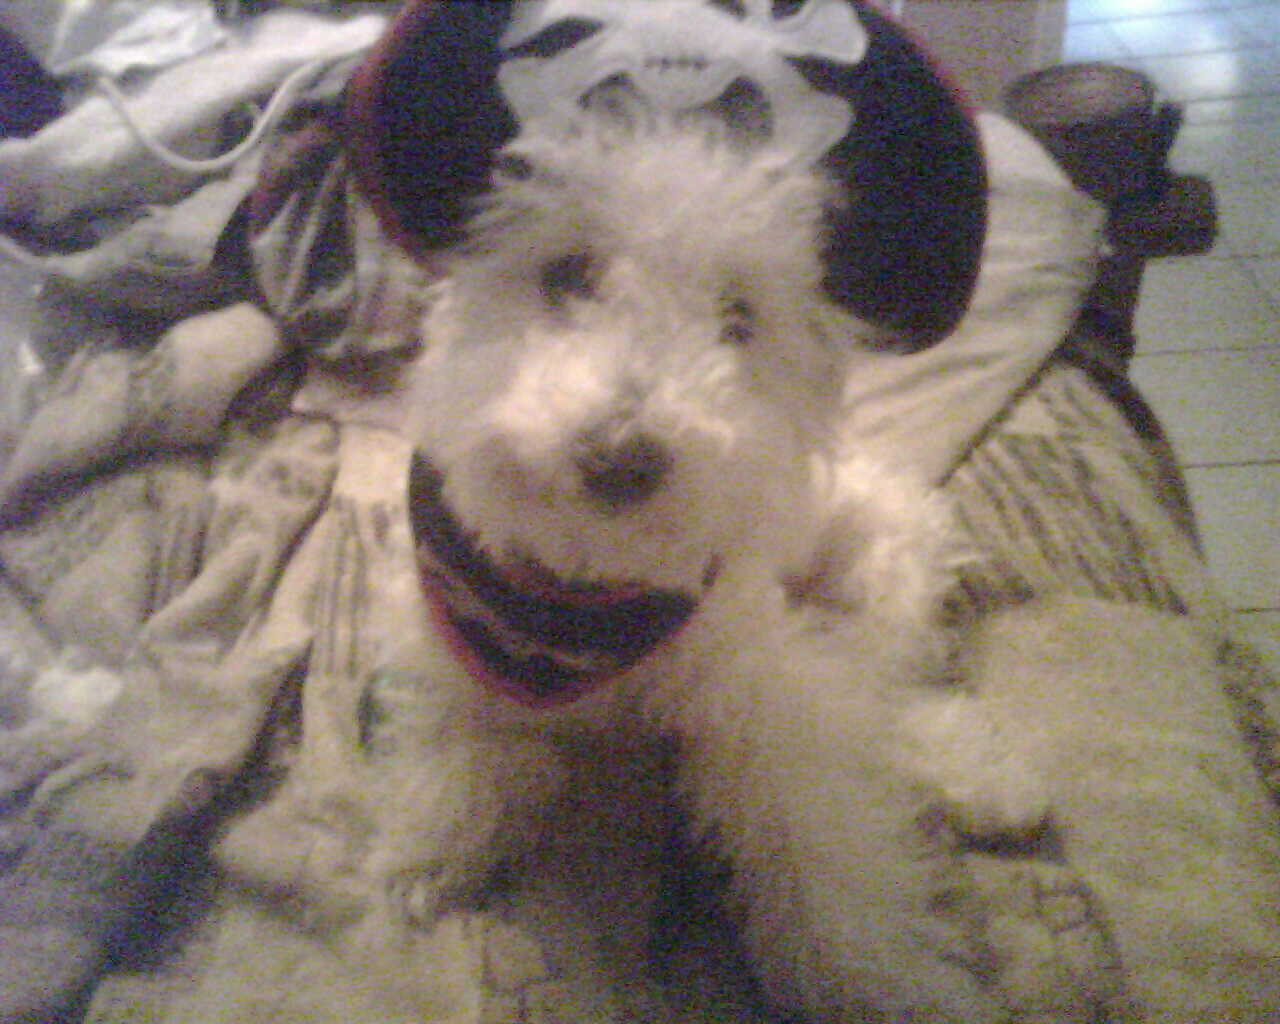 Scooter in a Pirate Costume